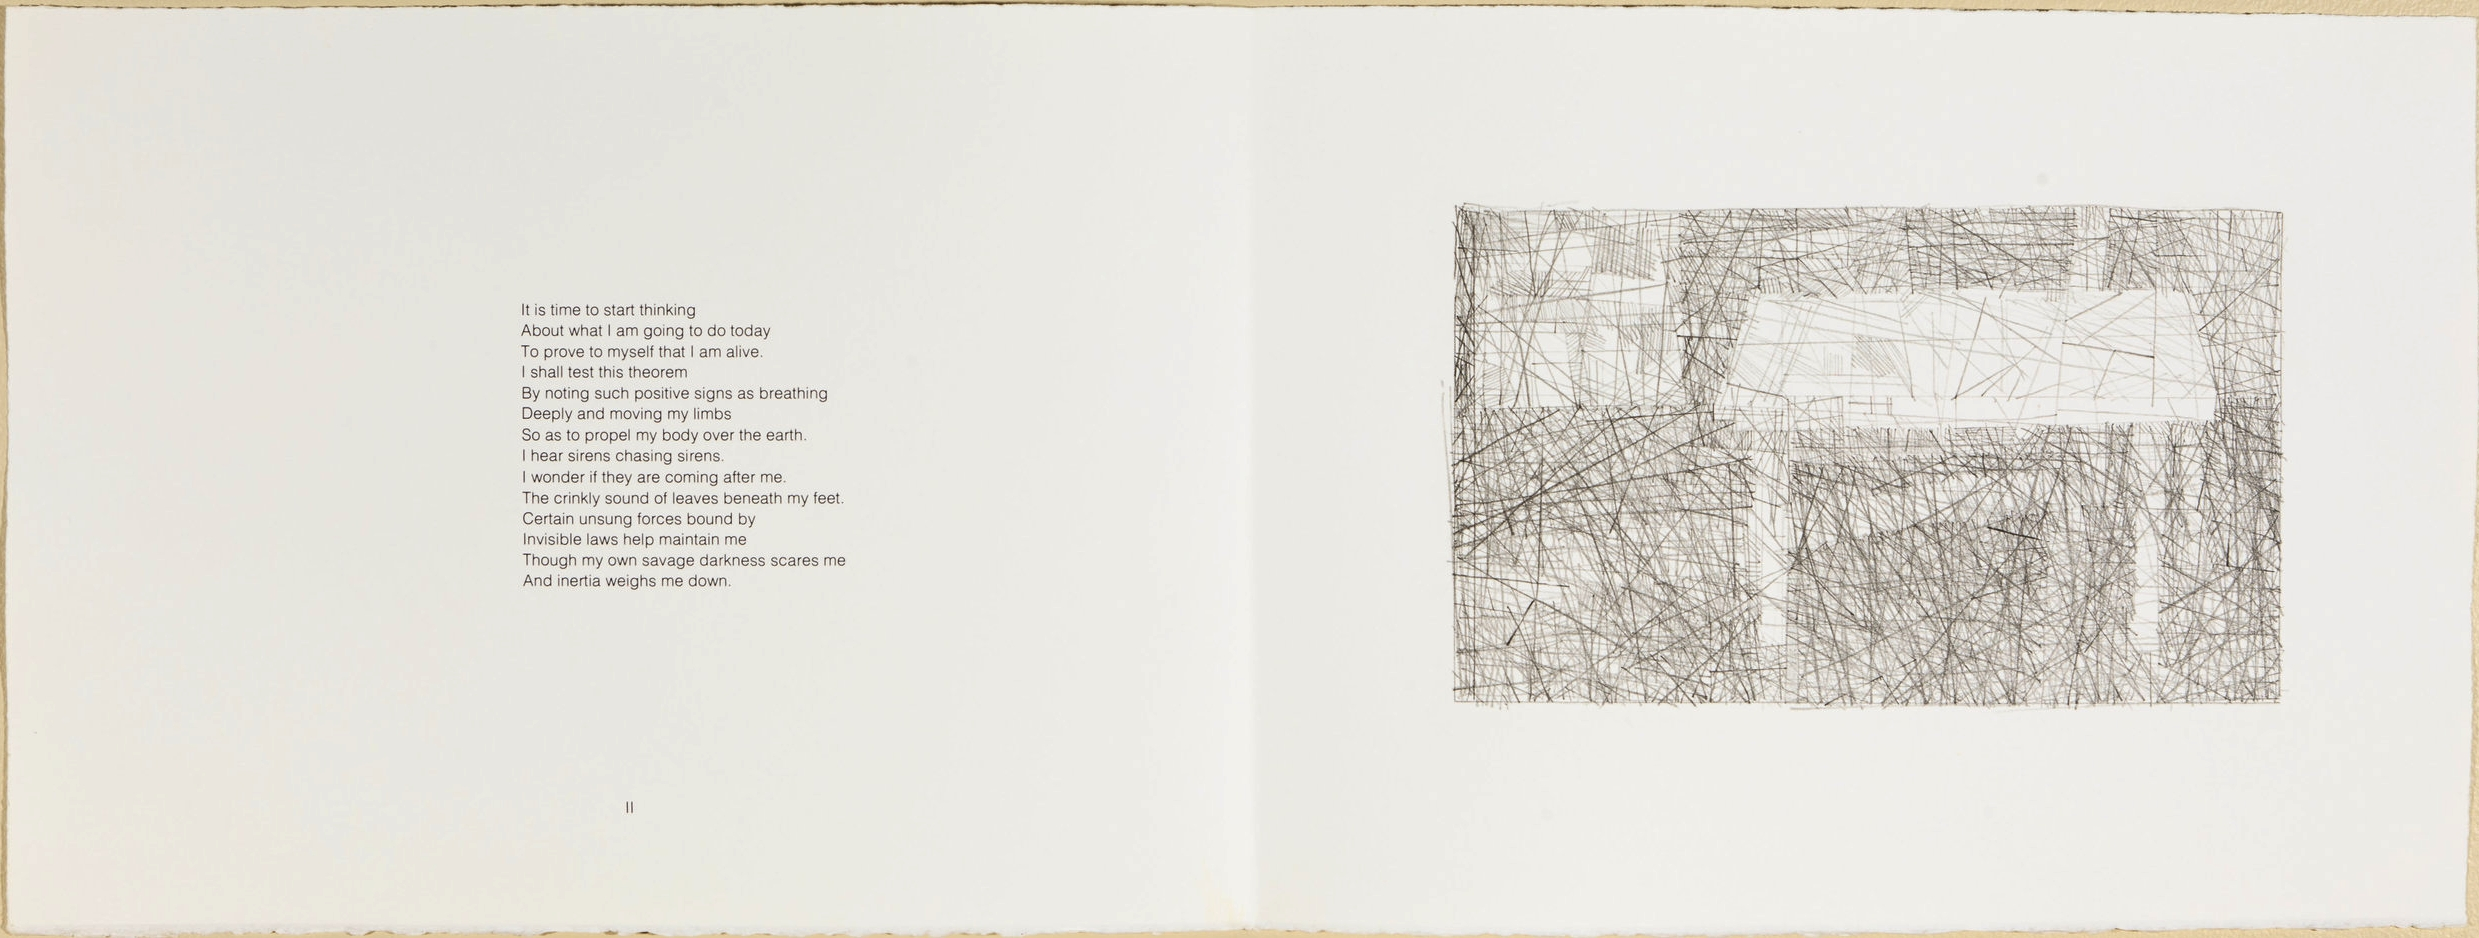 Wanderers and Other Poems  .  1985.  p.2, 11 × 30 in., lithograph